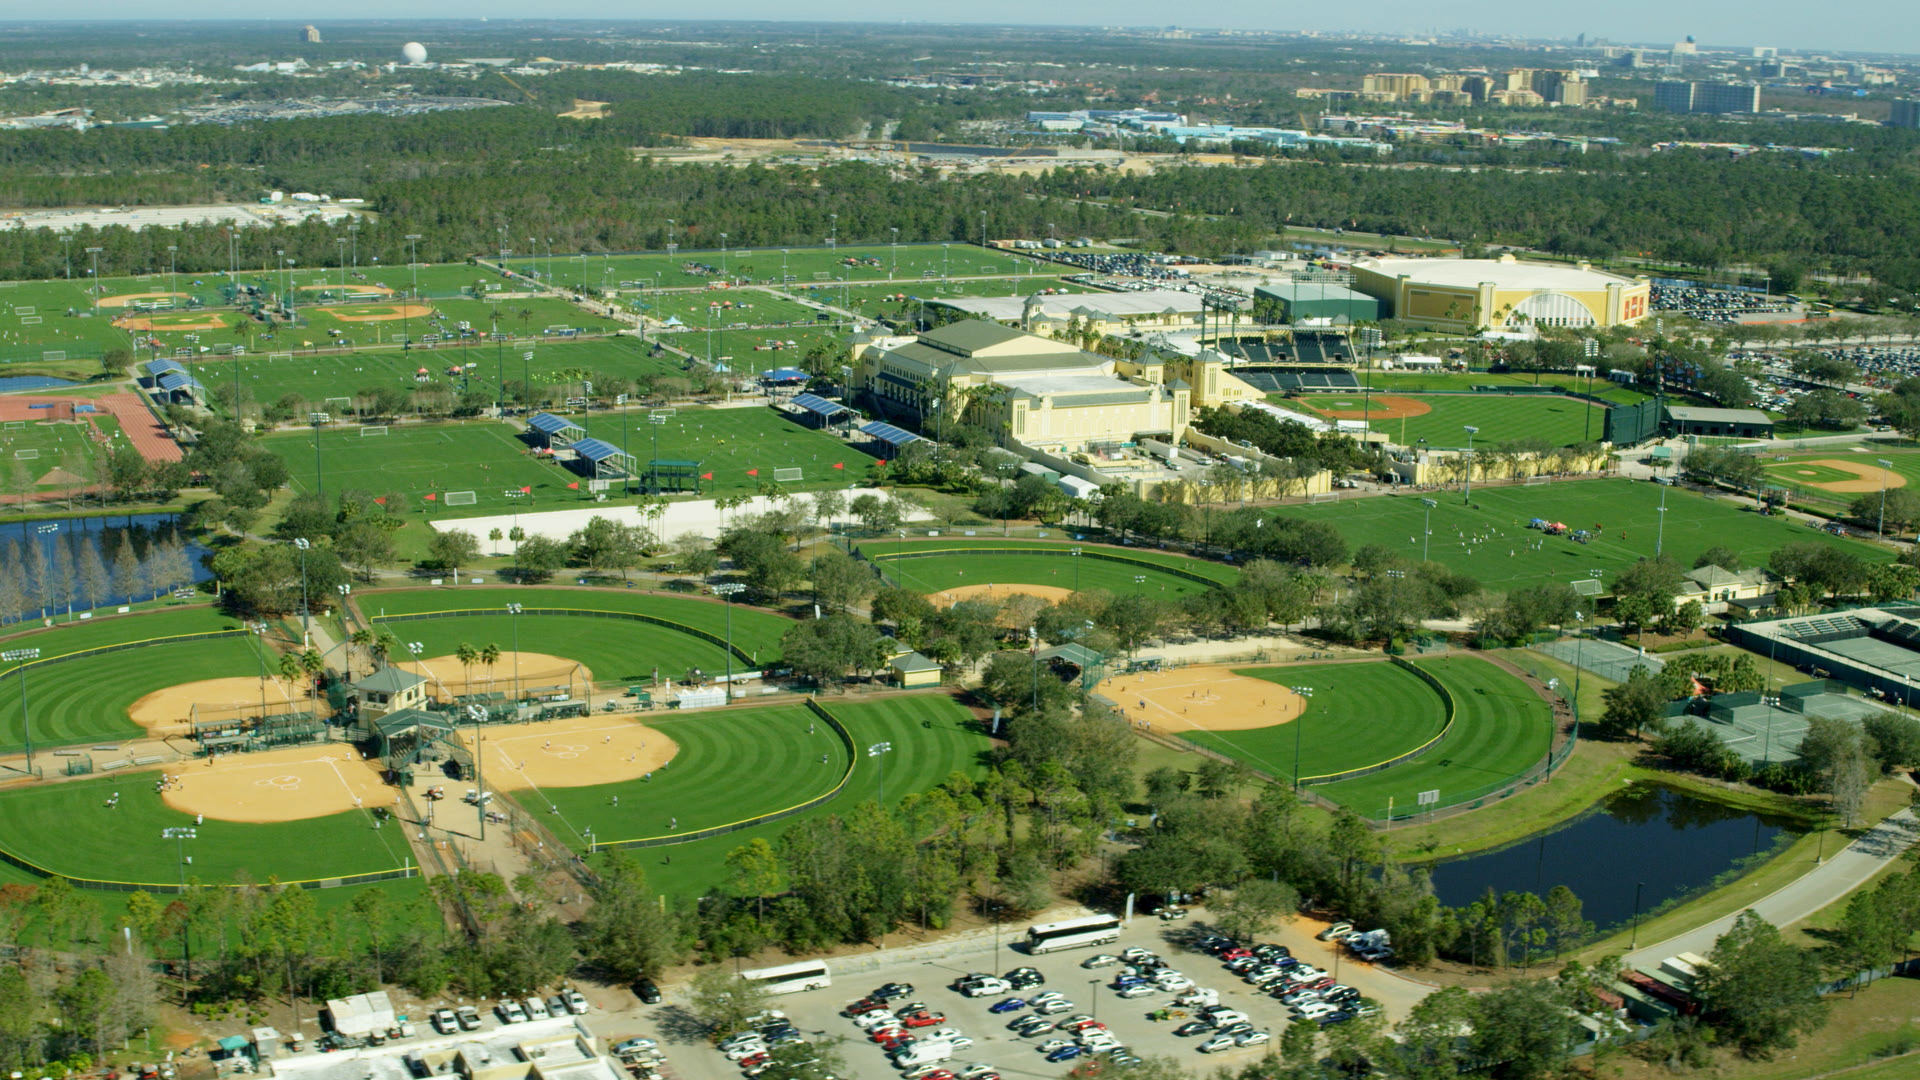 Disney World ESPN Wide World of Sports Complex in Kissimmee, Florida Osceola County